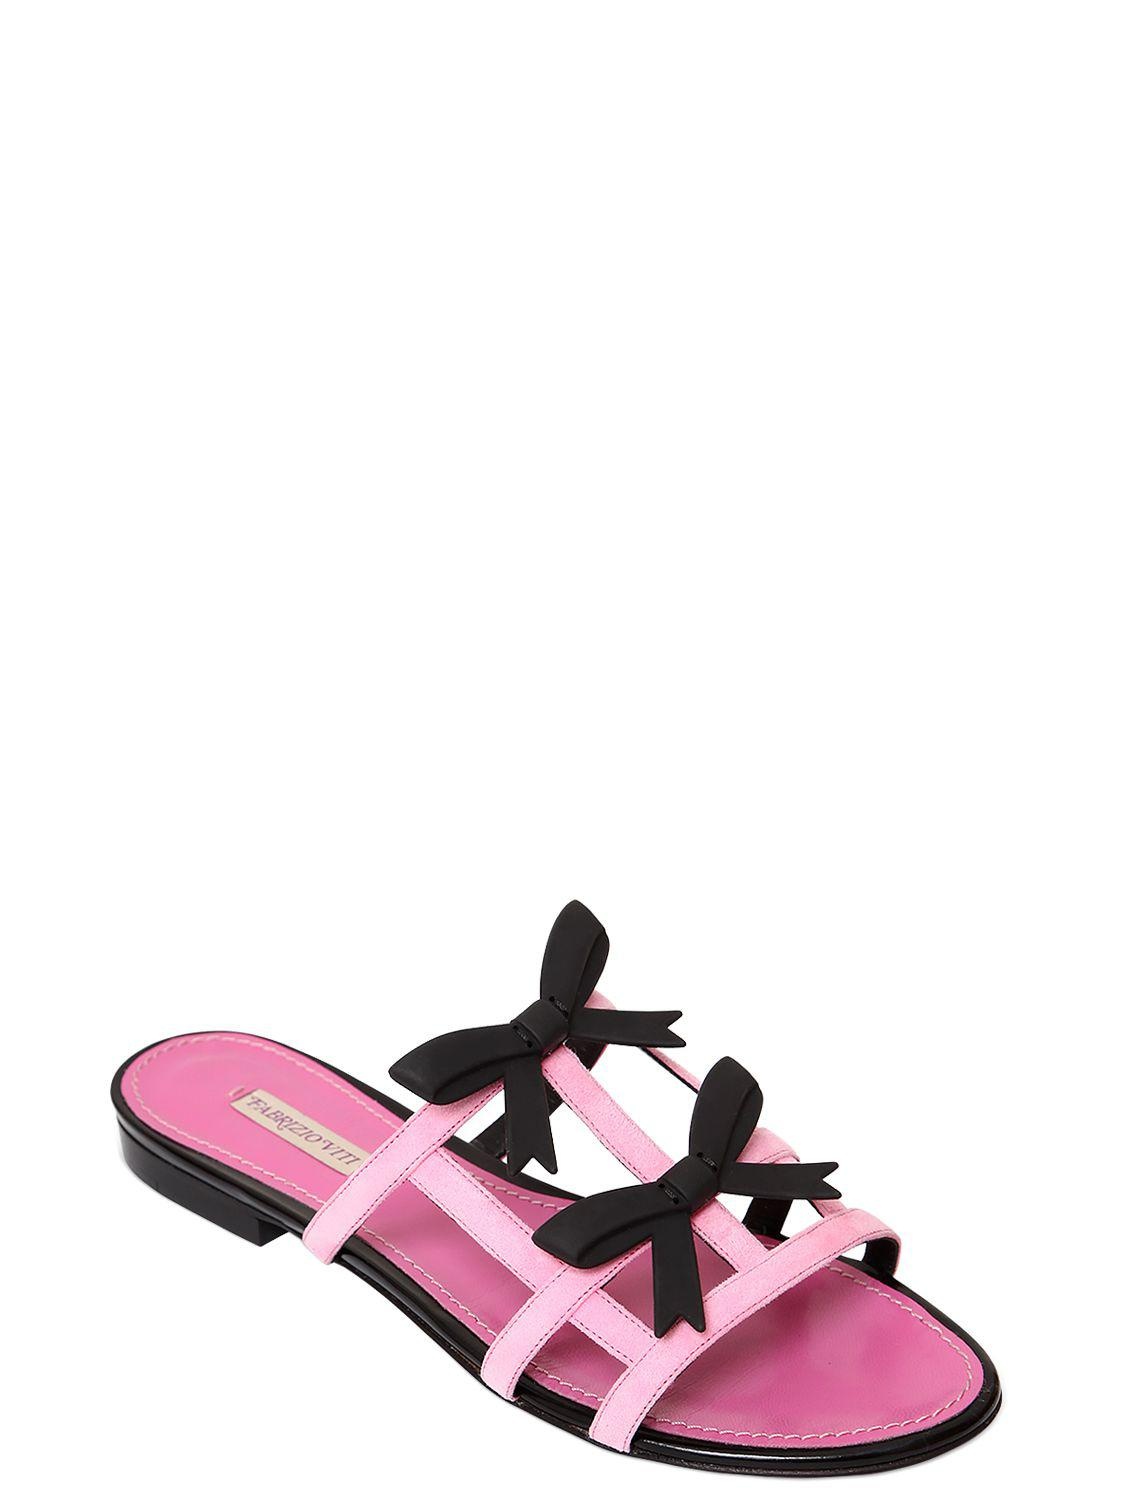 Fabrizio Viti 10MM CITY BOW SUEDE SLIDE SANDALS Fast Delivery Cheap Price Cheap Sale Amazing Price Recommend Cheap Discount Best Cheap Online 3xa1cr